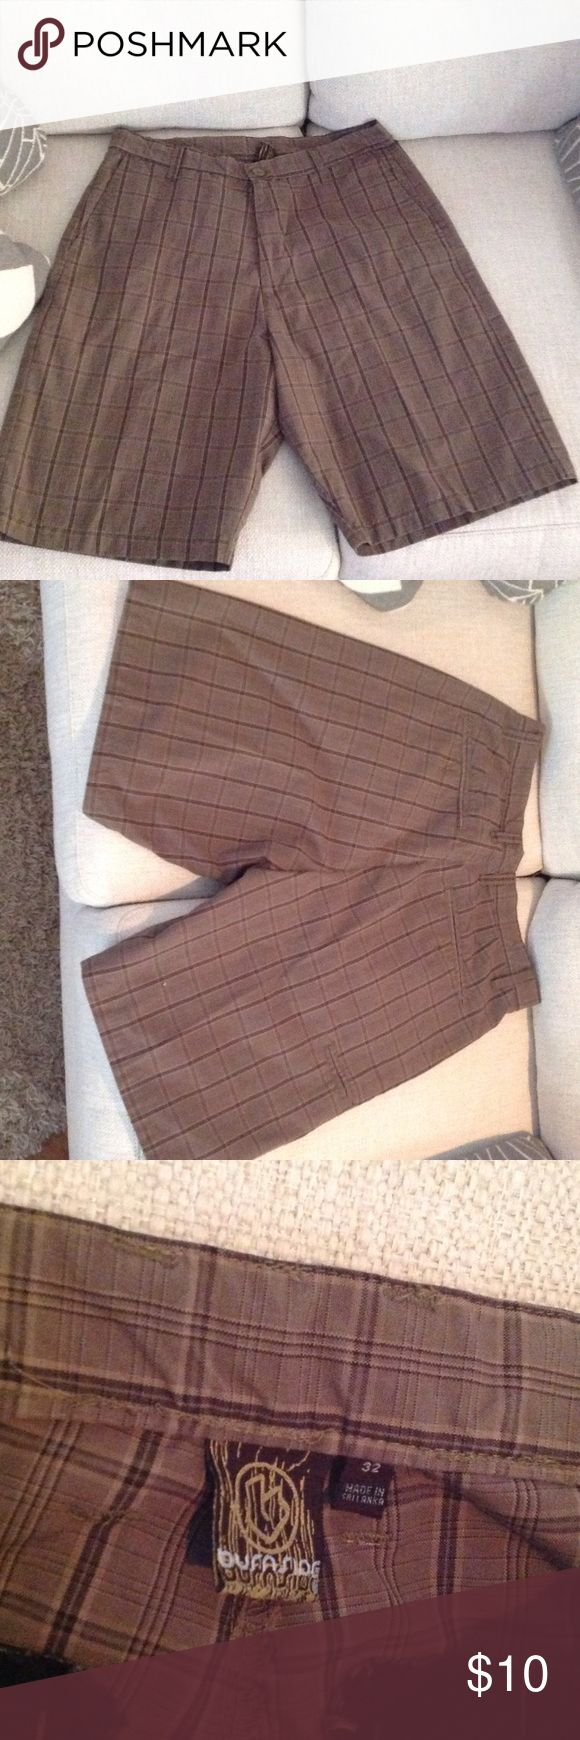 "😎MEN'S  DRESS SHORTS 😎EXCELLENT CONDITION!! NO STAINS OR RIPS.  BROWN COLORED PLAID 22-1/2"" LONG.  60%COTTON/40%POLY Burnside Shorts Flat Front"